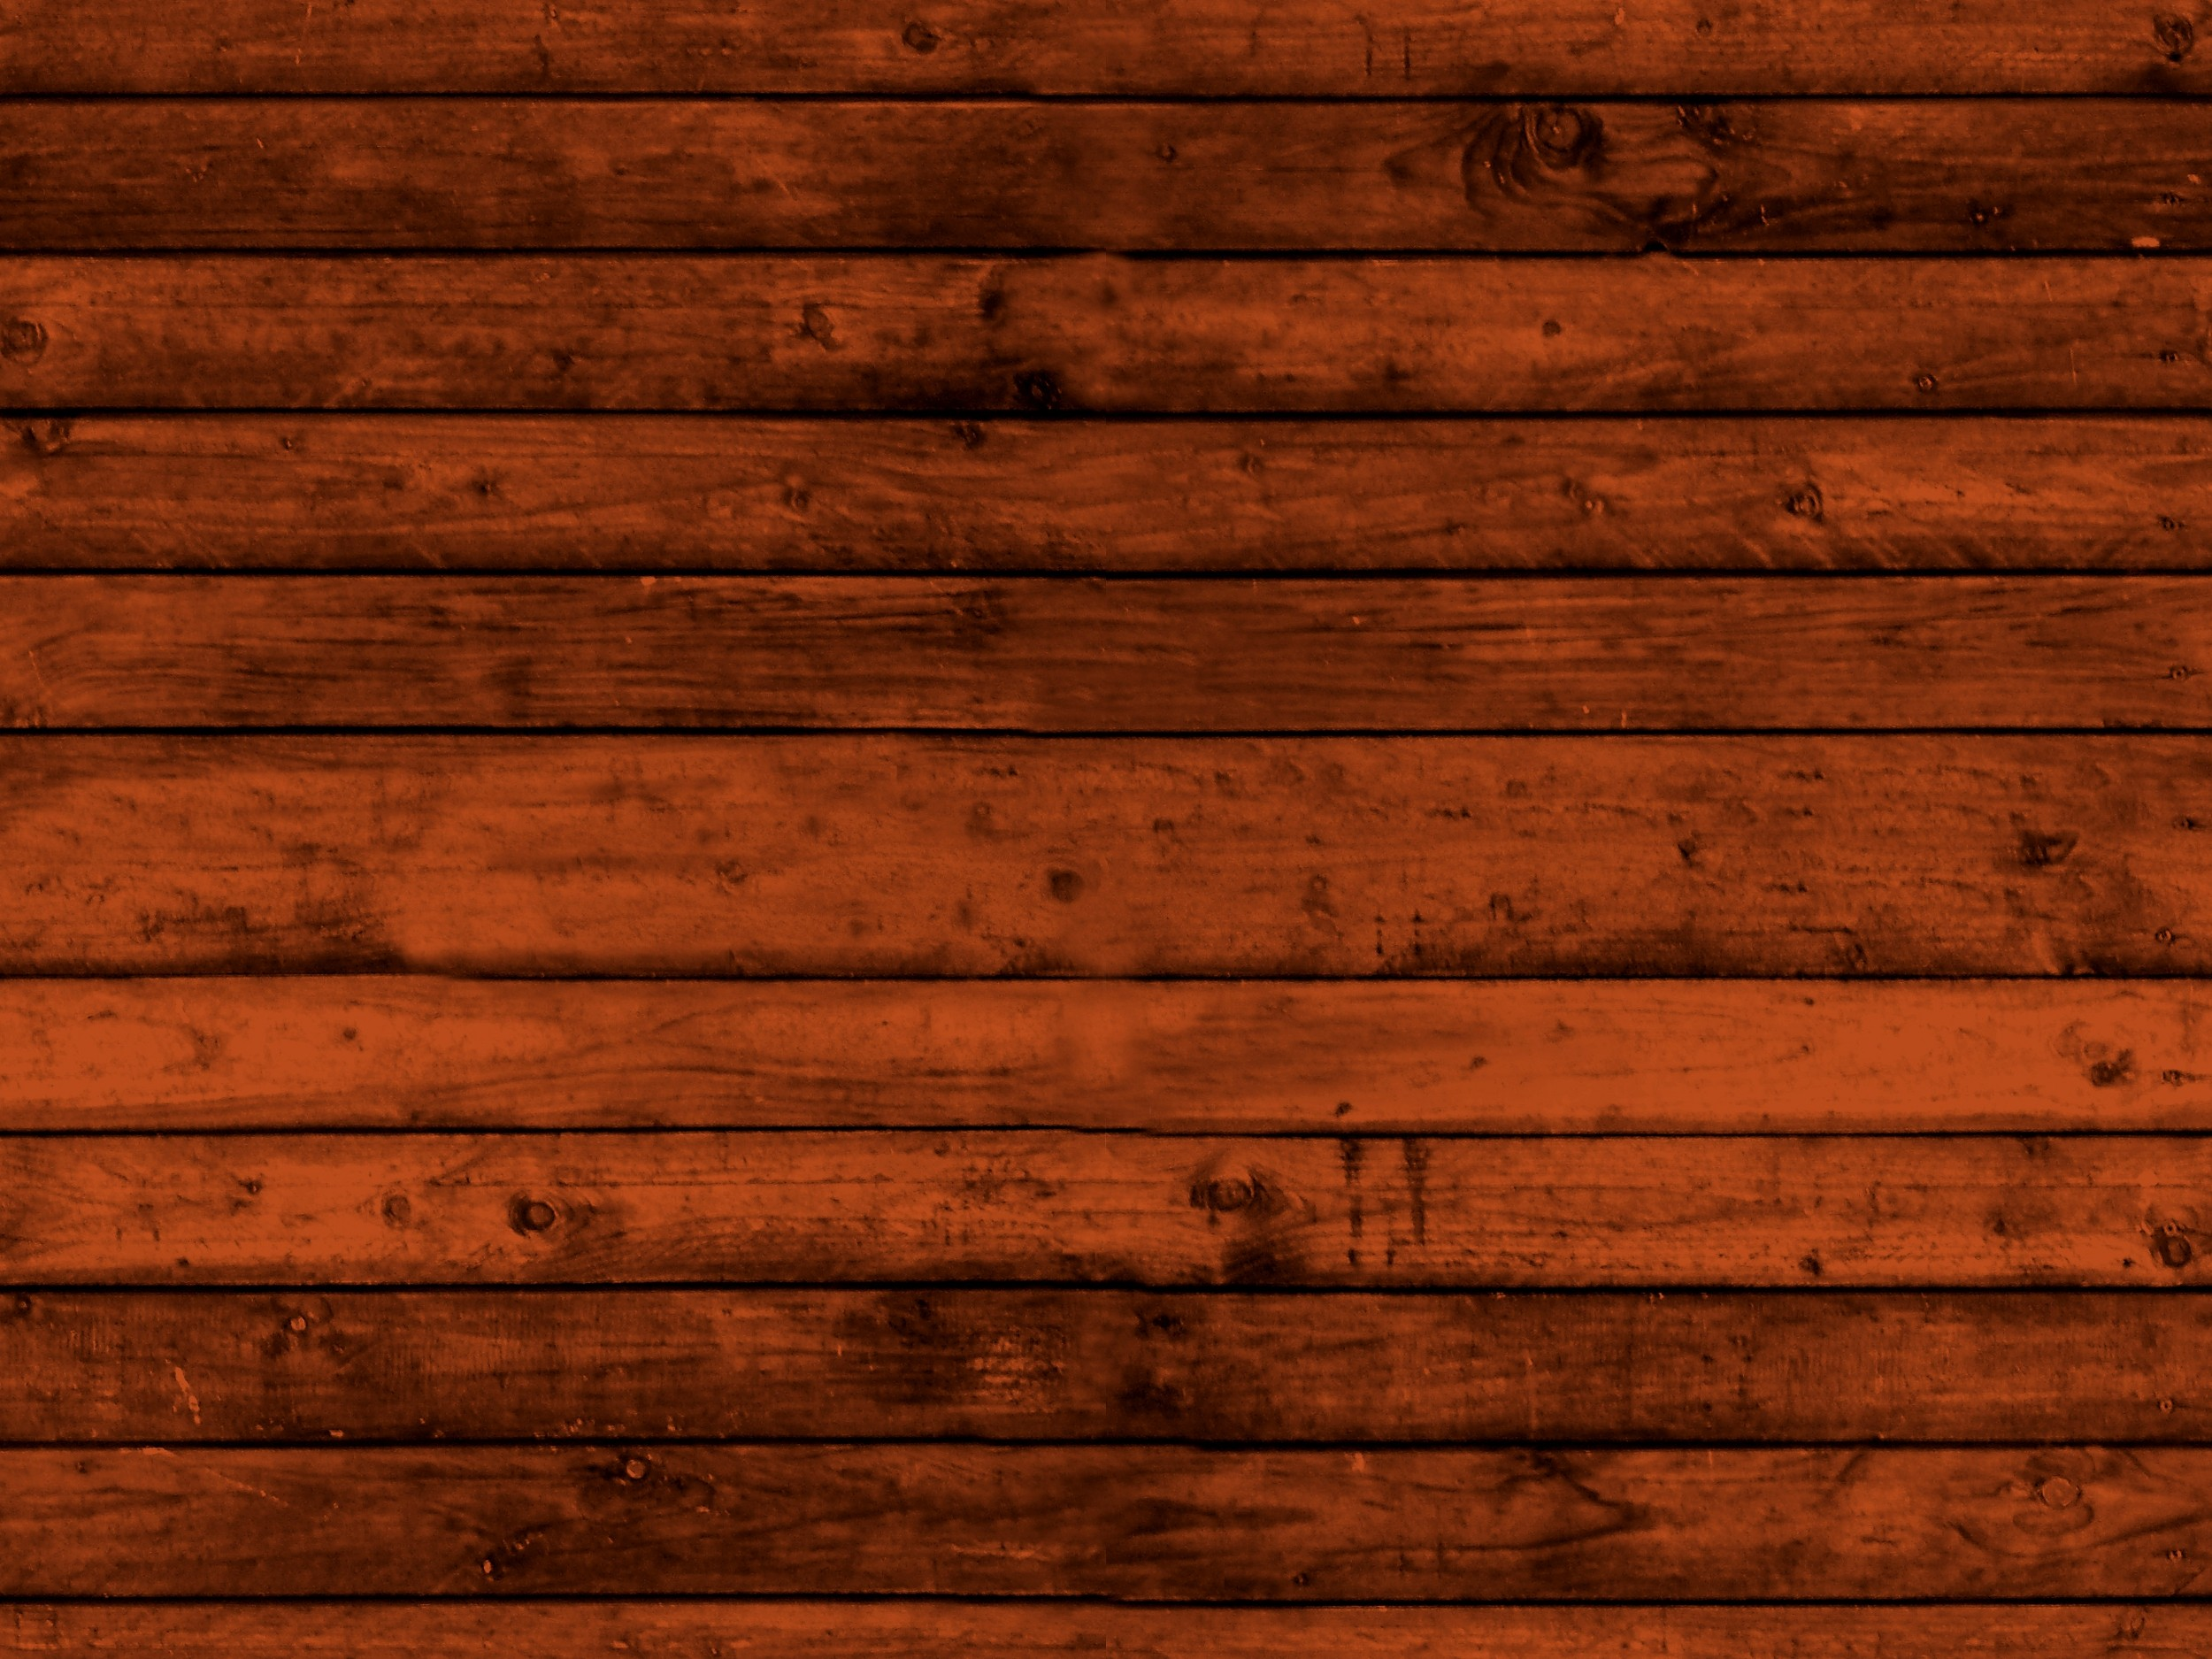 Wood Plank Background ~ Wood plank background ·① download free awesome wallpapers